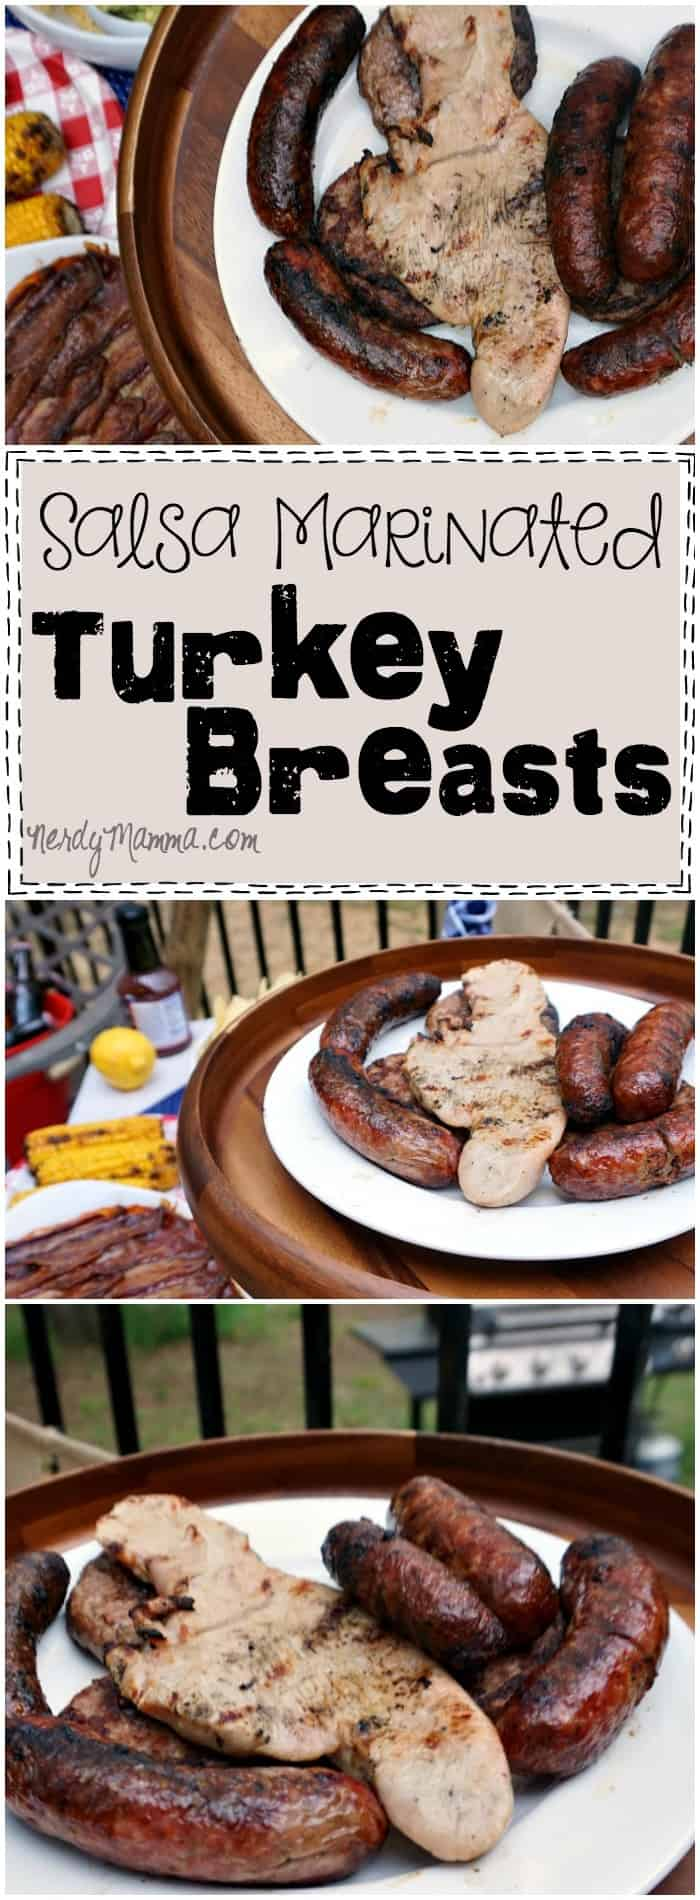 I love this easy recipe for salsa marinated Turkey Breasts. They sound like they'd be so moist and tender...great idea!